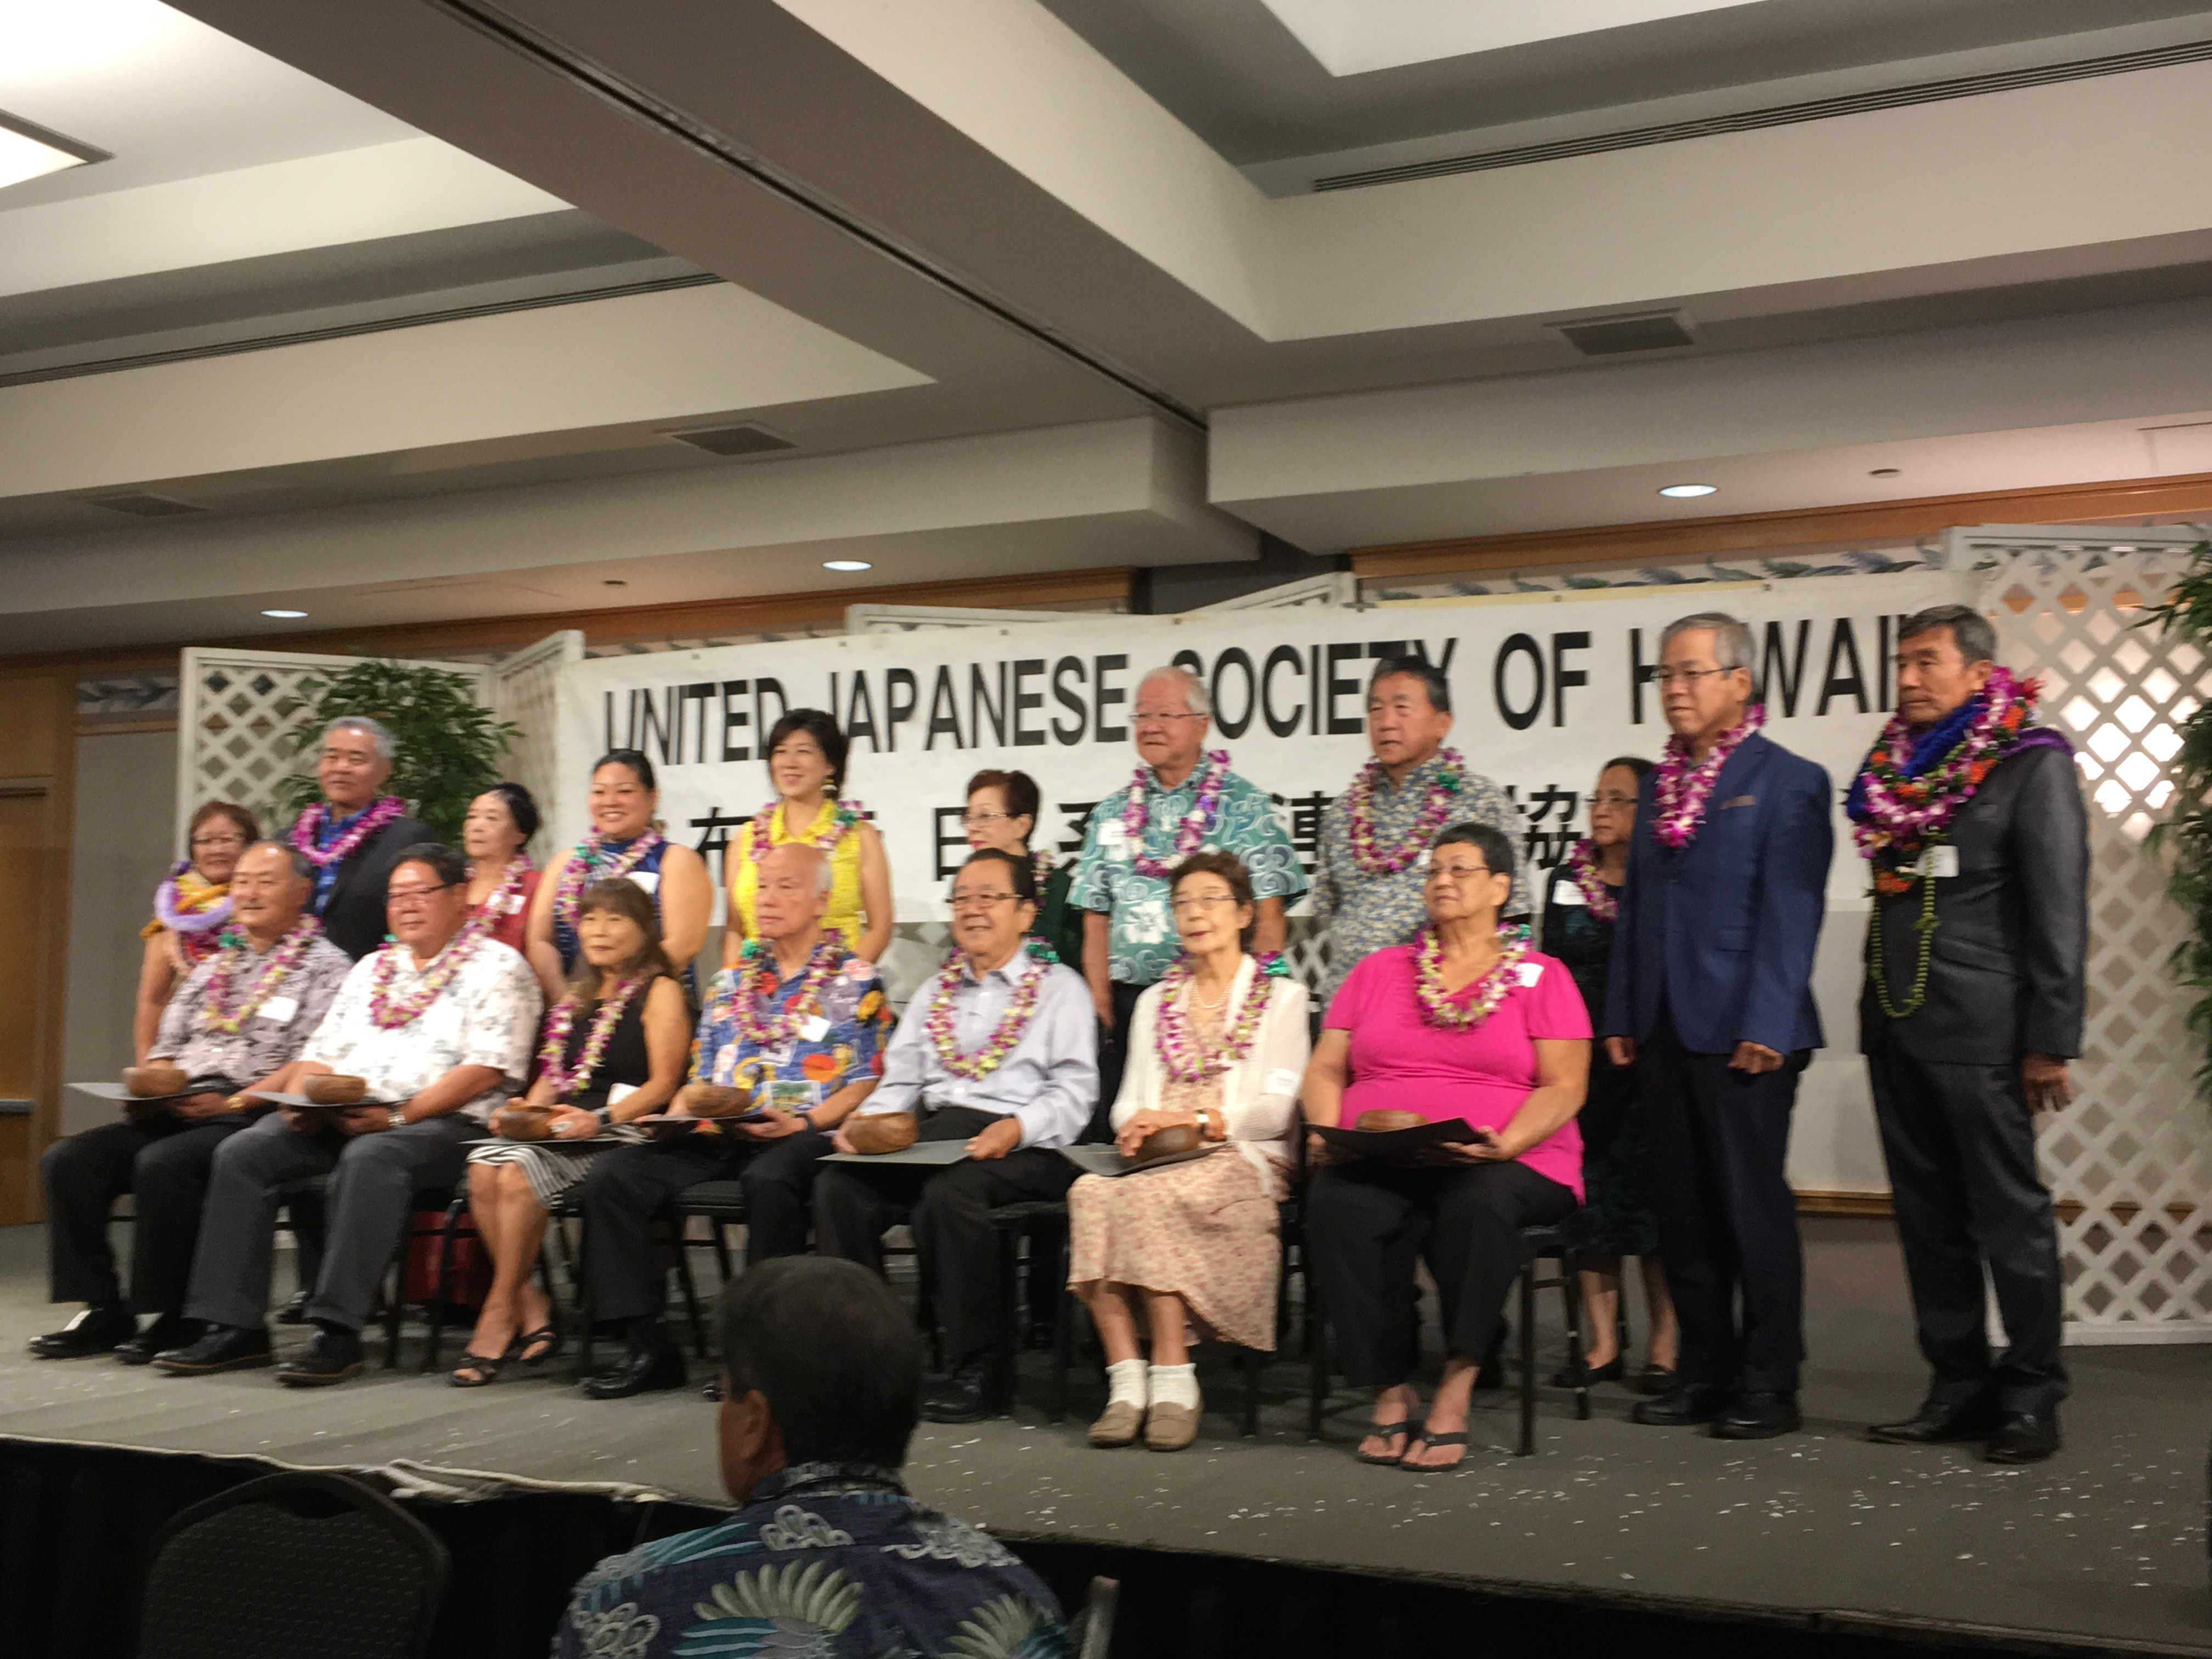 The Kenjin Kai Outstanding Member Award honorees in a group photo with several of the invited guests, including Gov. David Ige and Consul General of Japan Koichi Ito, and UJSH leaders.